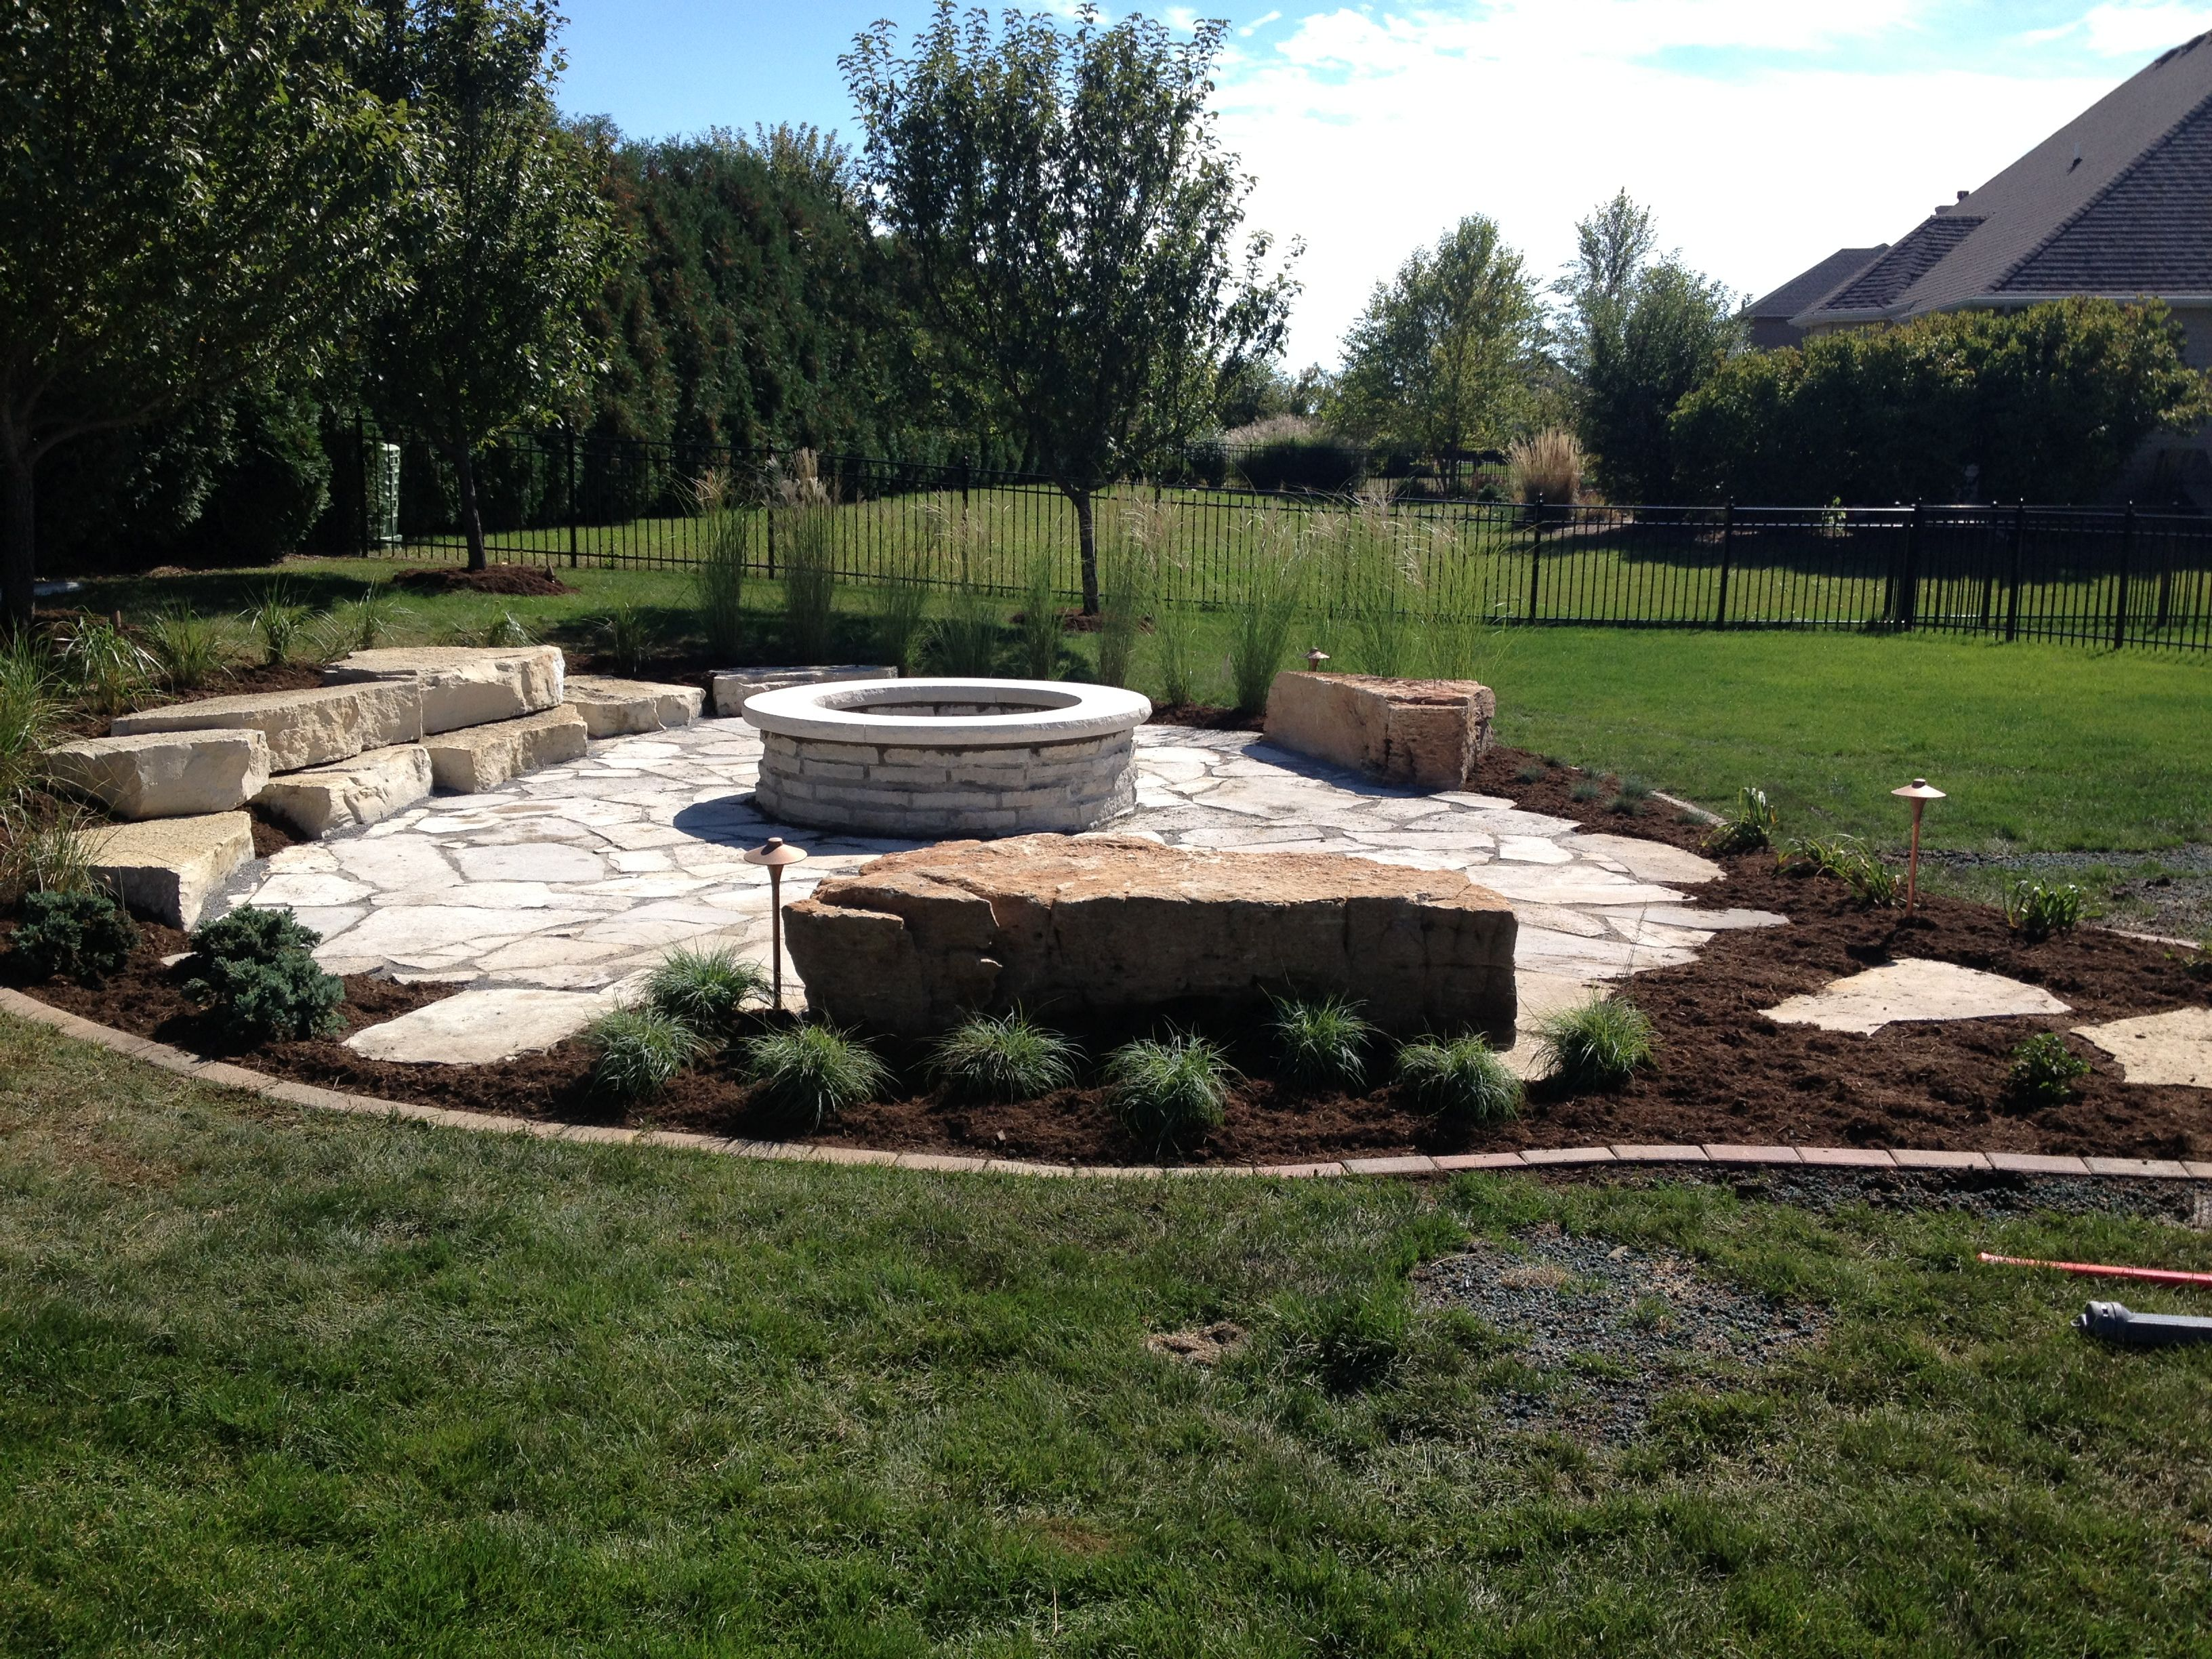 Rustic Outdoor Fire Pit Area